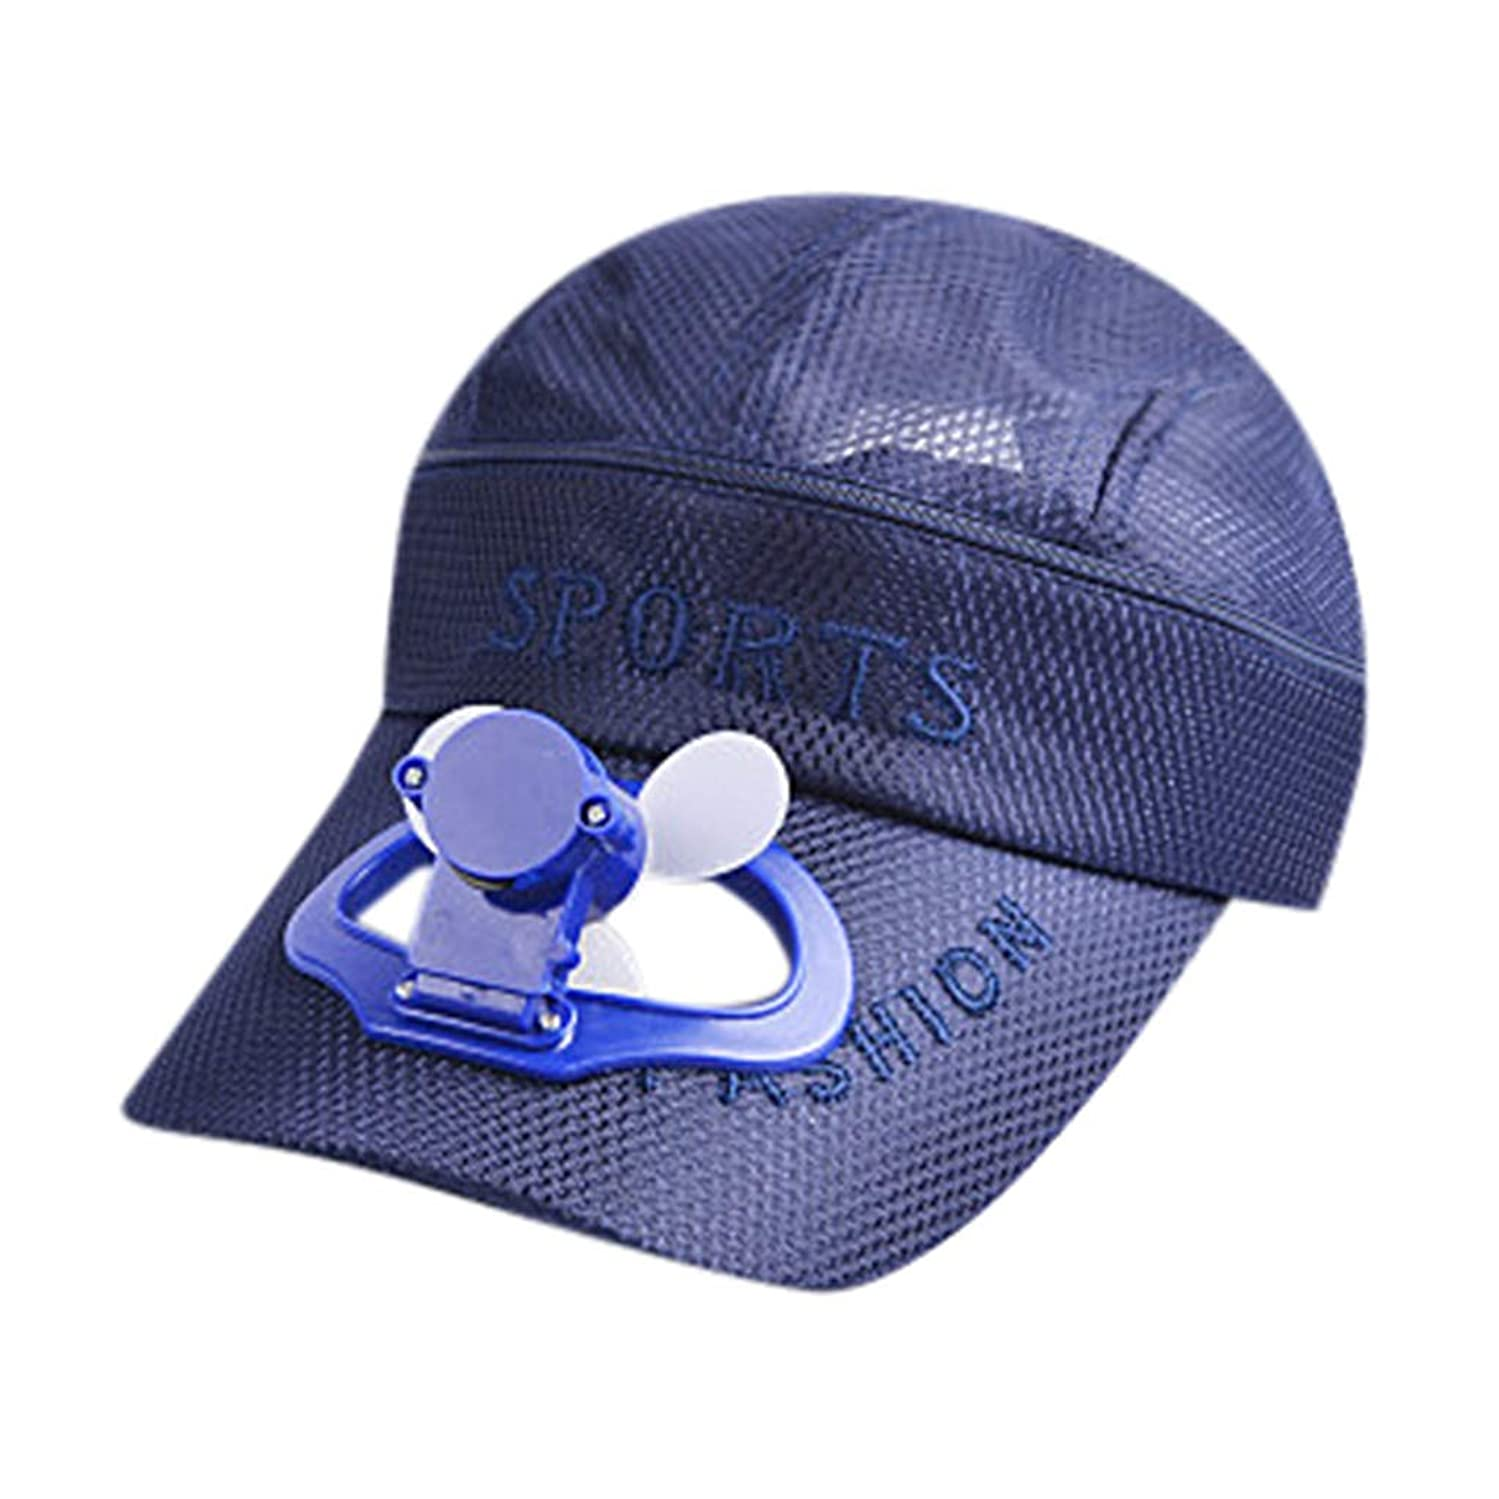 Houshelp Unisex Camping Hiking Peaked Cap Fan Baseball Hat Cooling USB Charging Recharge Outdoor with Solar Power Cool